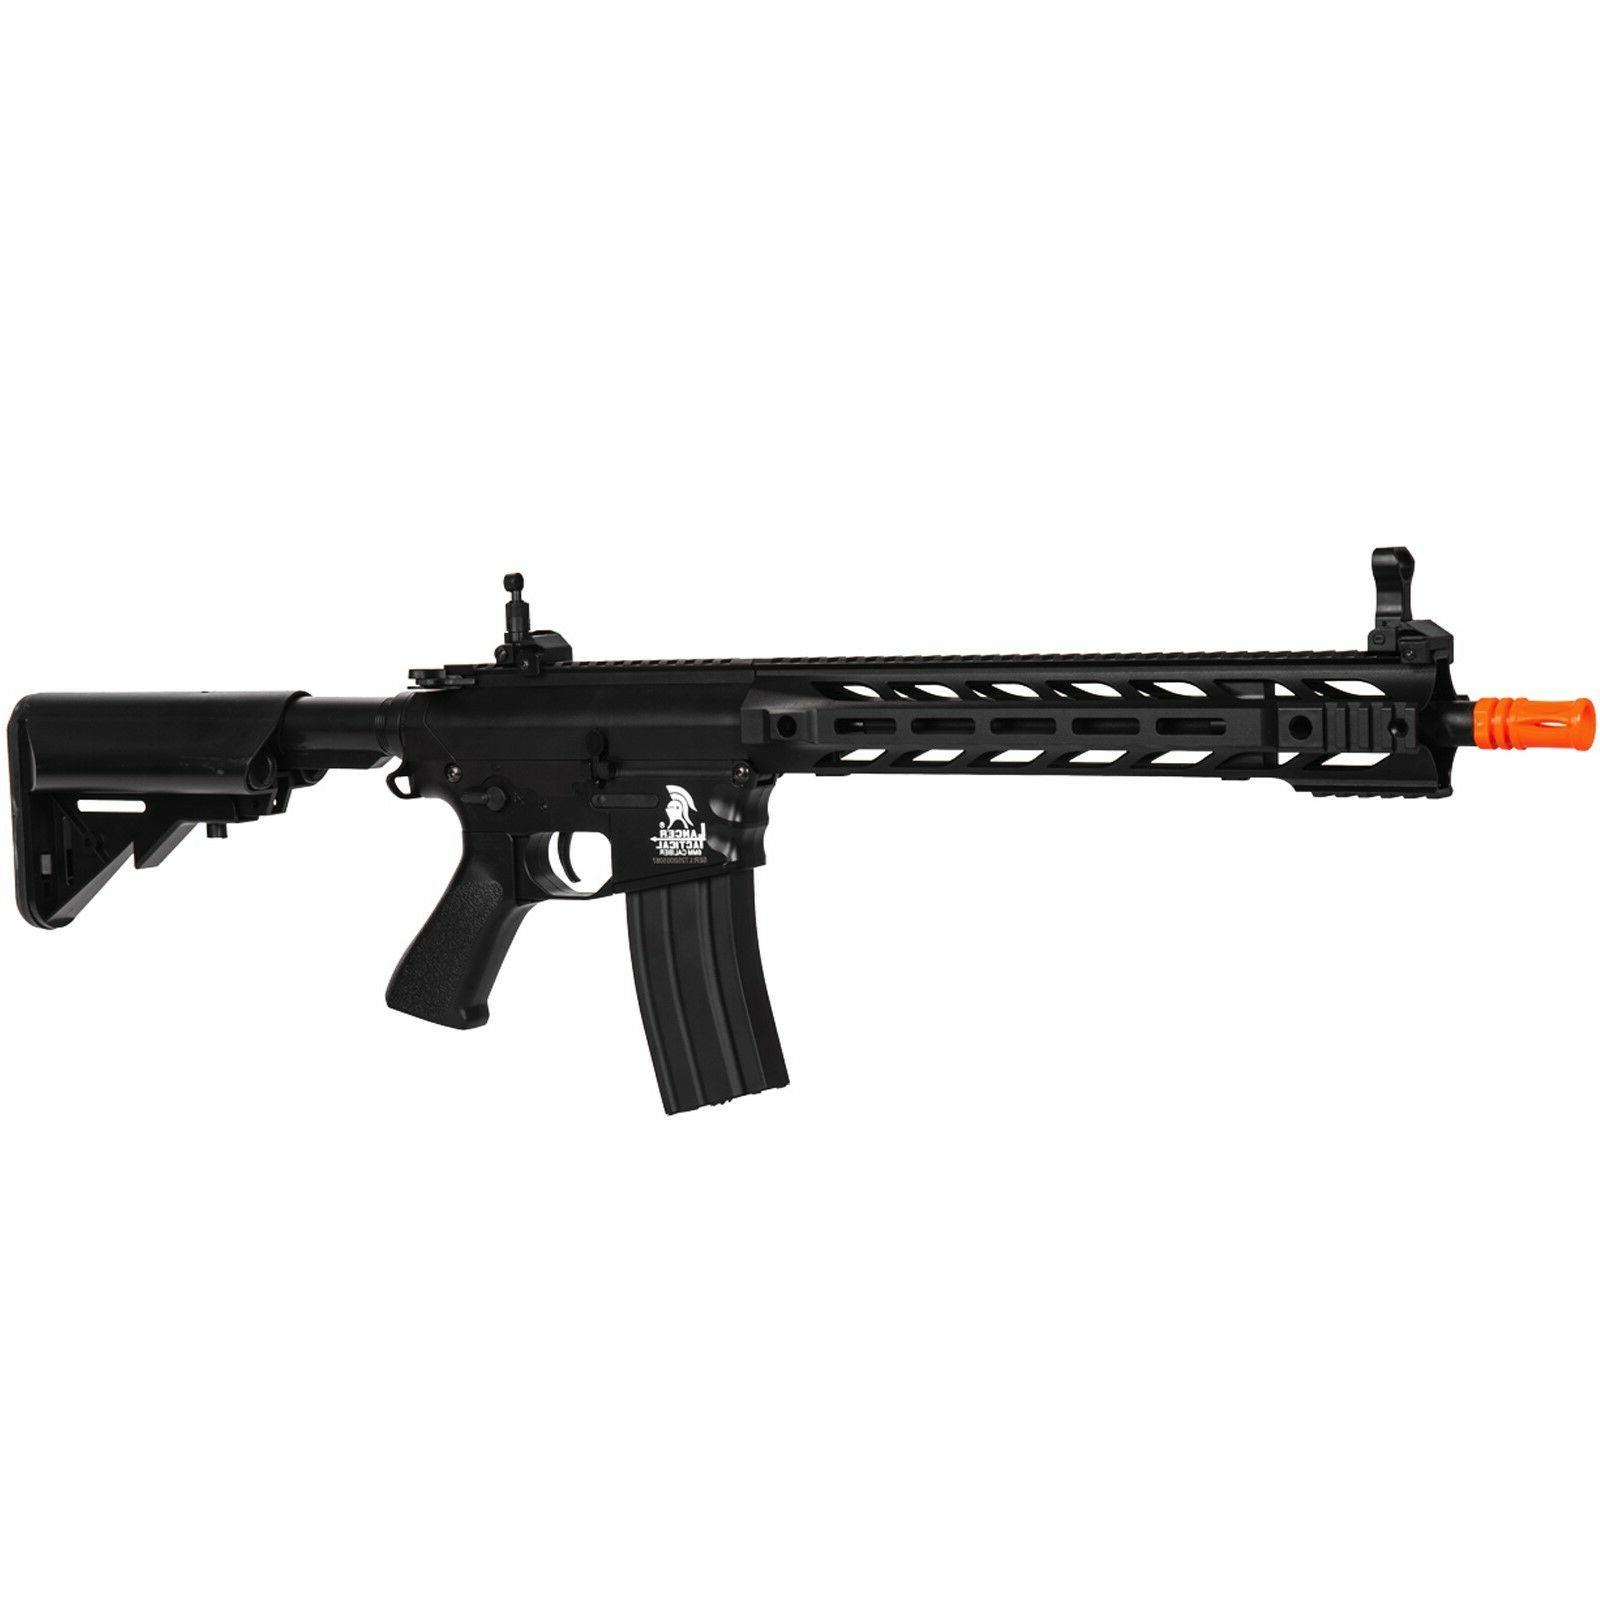 Lancer Tactical LT-25 SPR Automatic M4 Electric Airsoft